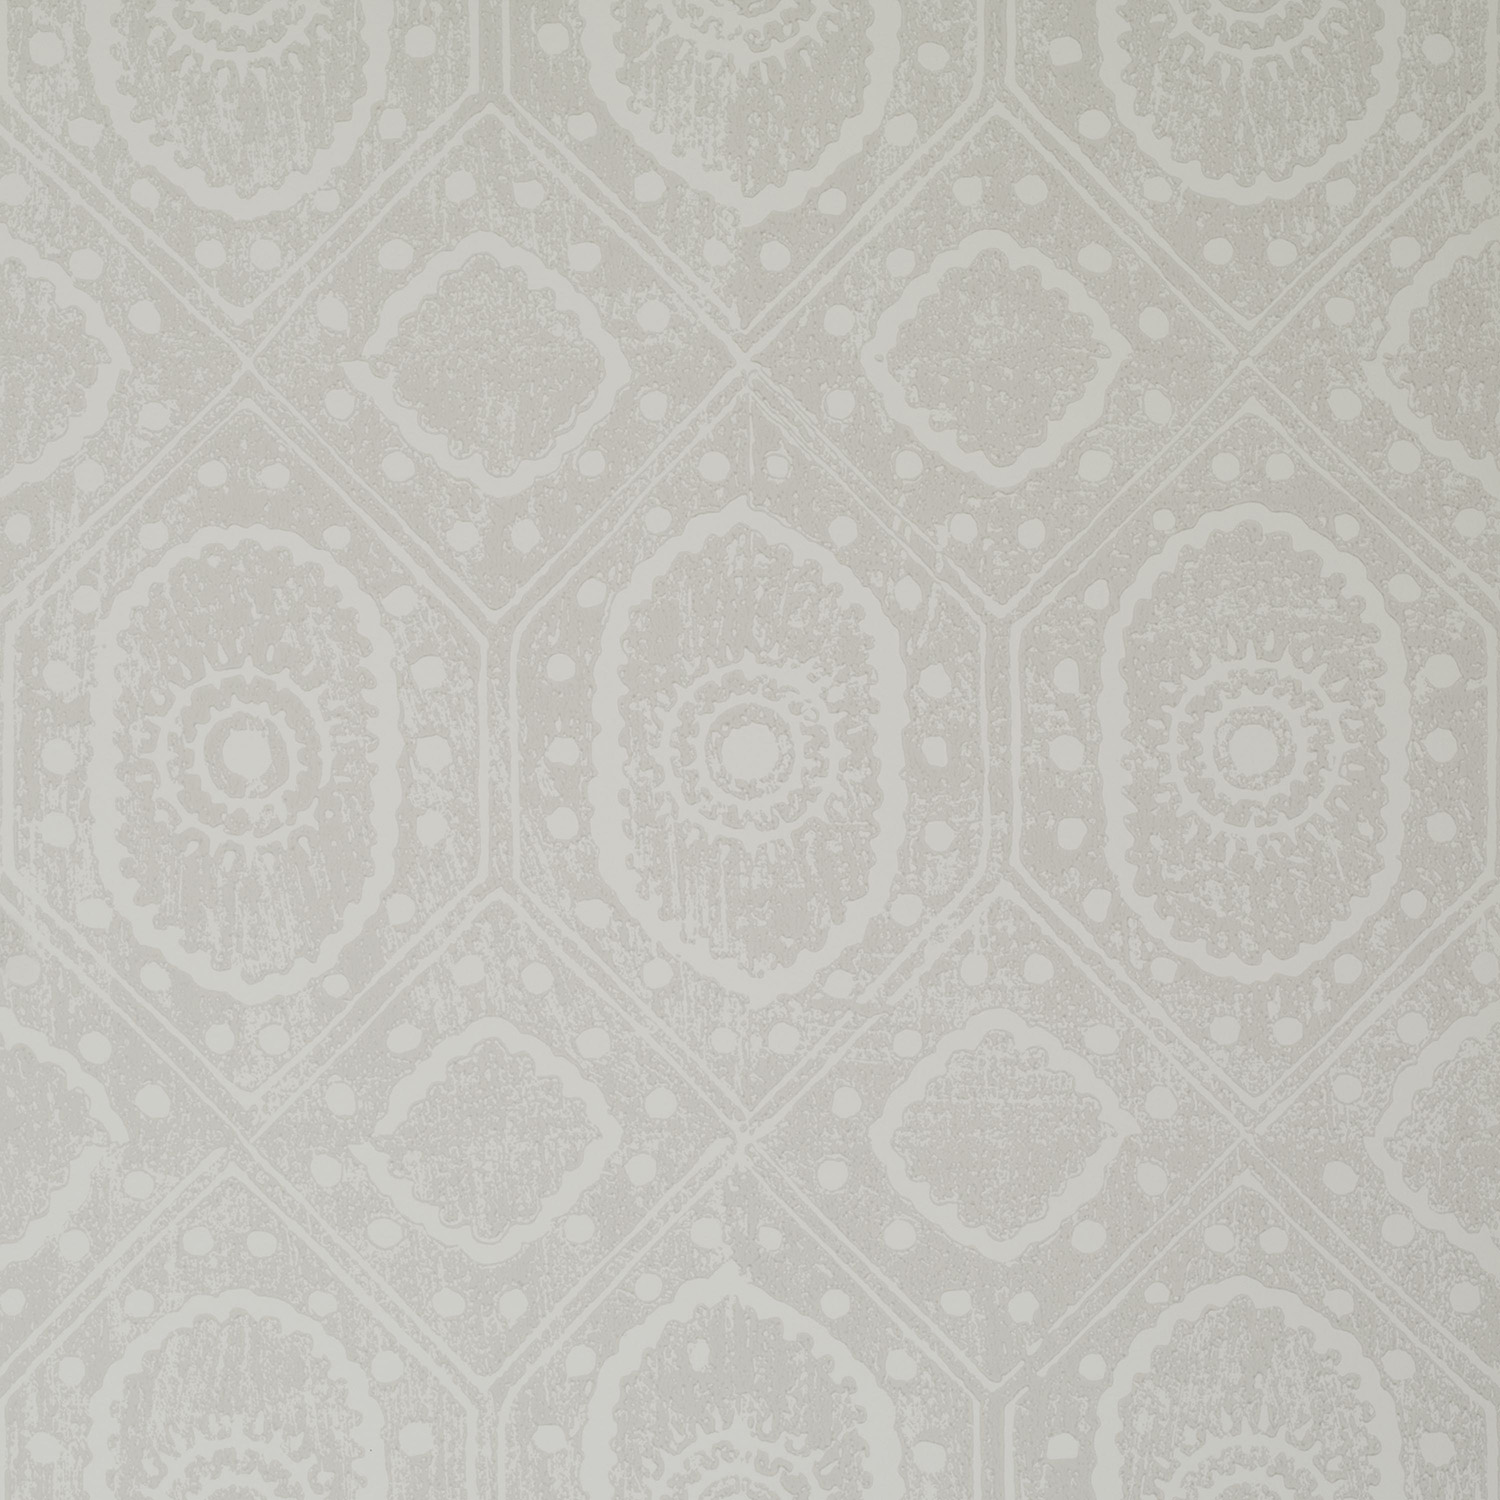 <p><strong>DIAMOND</strong>mist 900-04<a href=/the-chatham-collection/diamond-mist-900-04>More →</a></p>